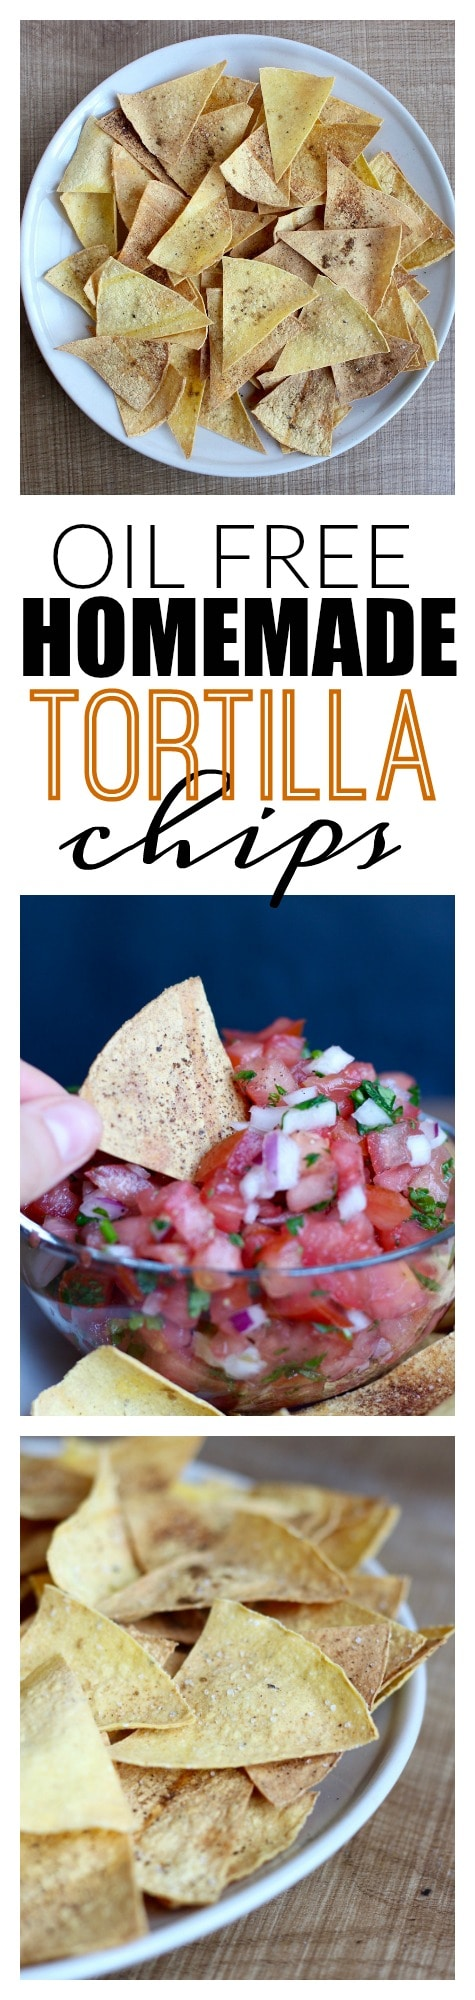 Oil-free hommade tortilla chips